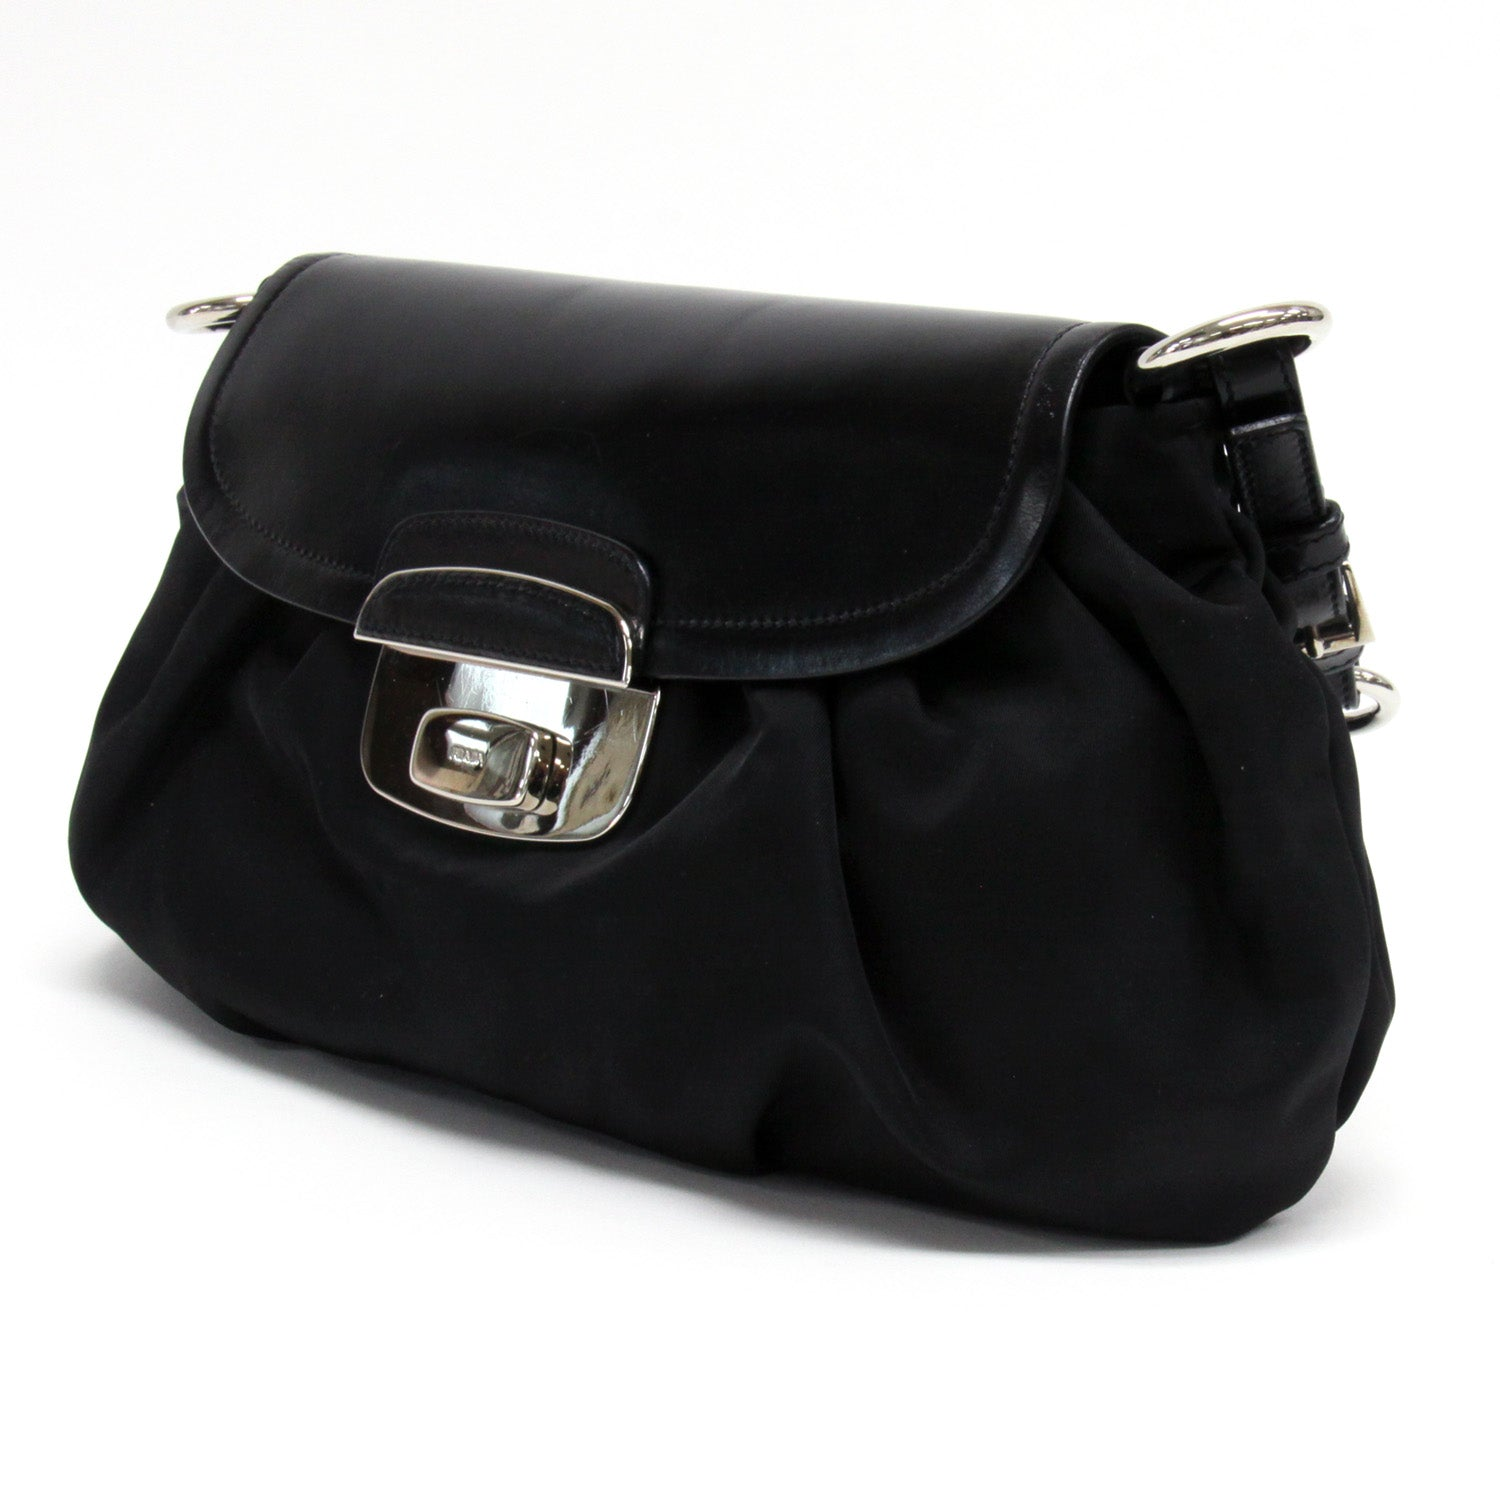 90526d77ae45 ... Load image into Gallery viewer, Prada Black Nylon Leather Silver  Hardware Flap Shoulder Bag ...